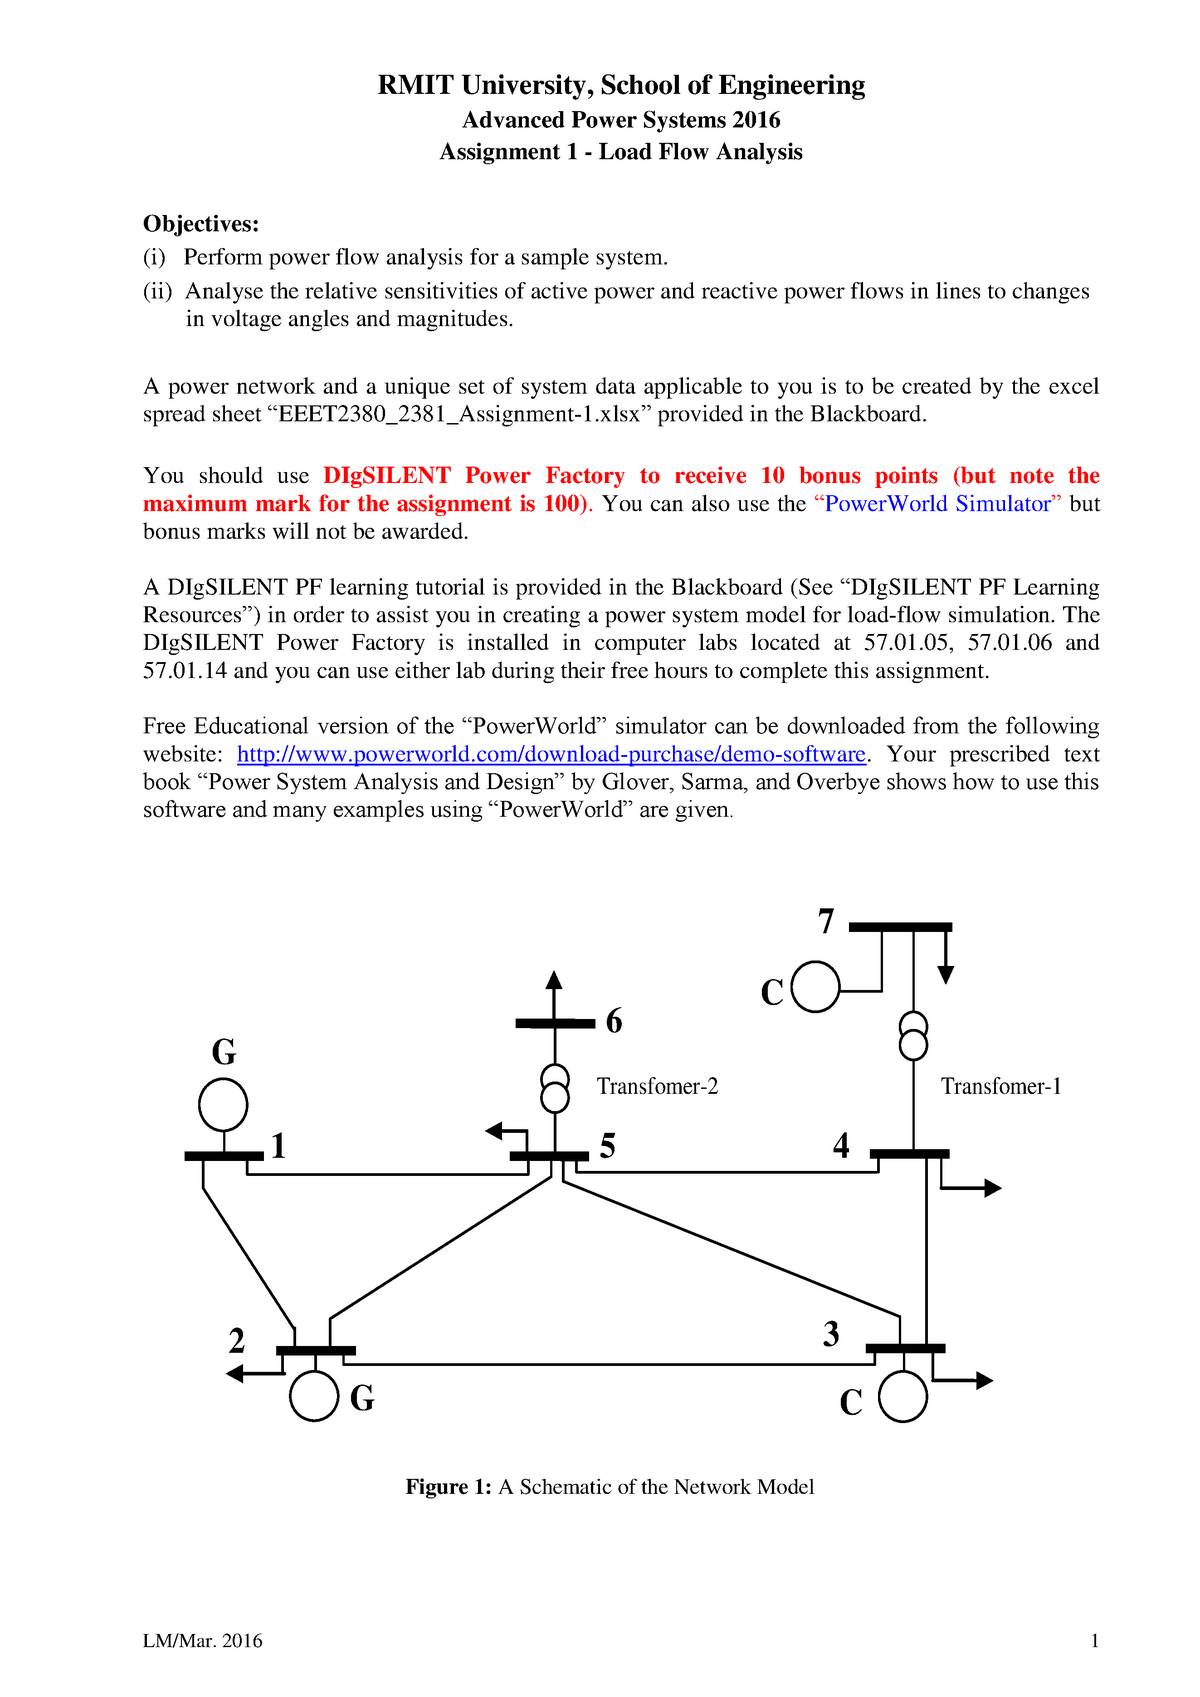 Advanced Power Systems Assignment 1 - EEET2380: Advanced Power